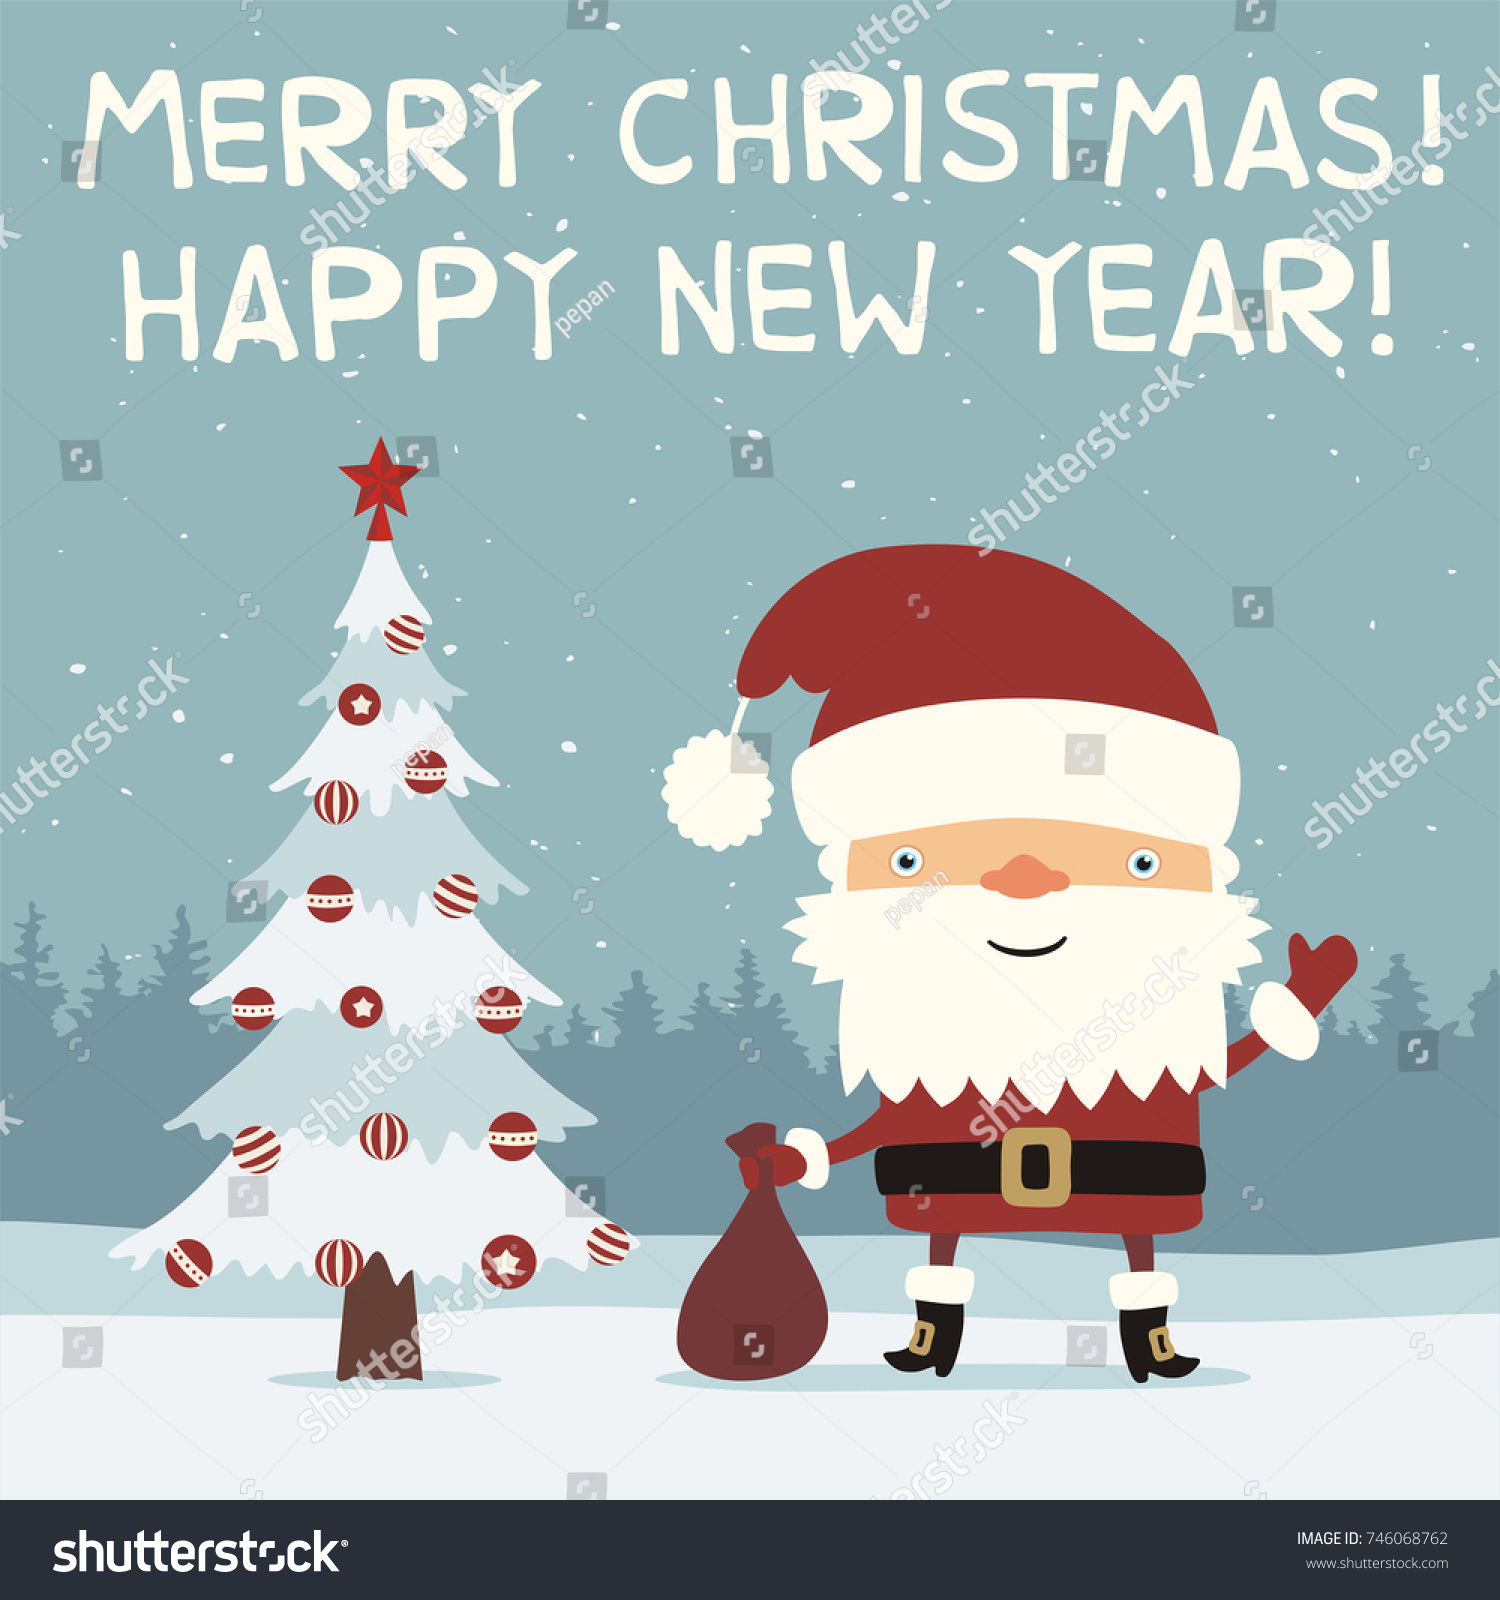 Funny Happy Xmas Quotes: Merry Christmas Happy New Year Funny Stock Vector